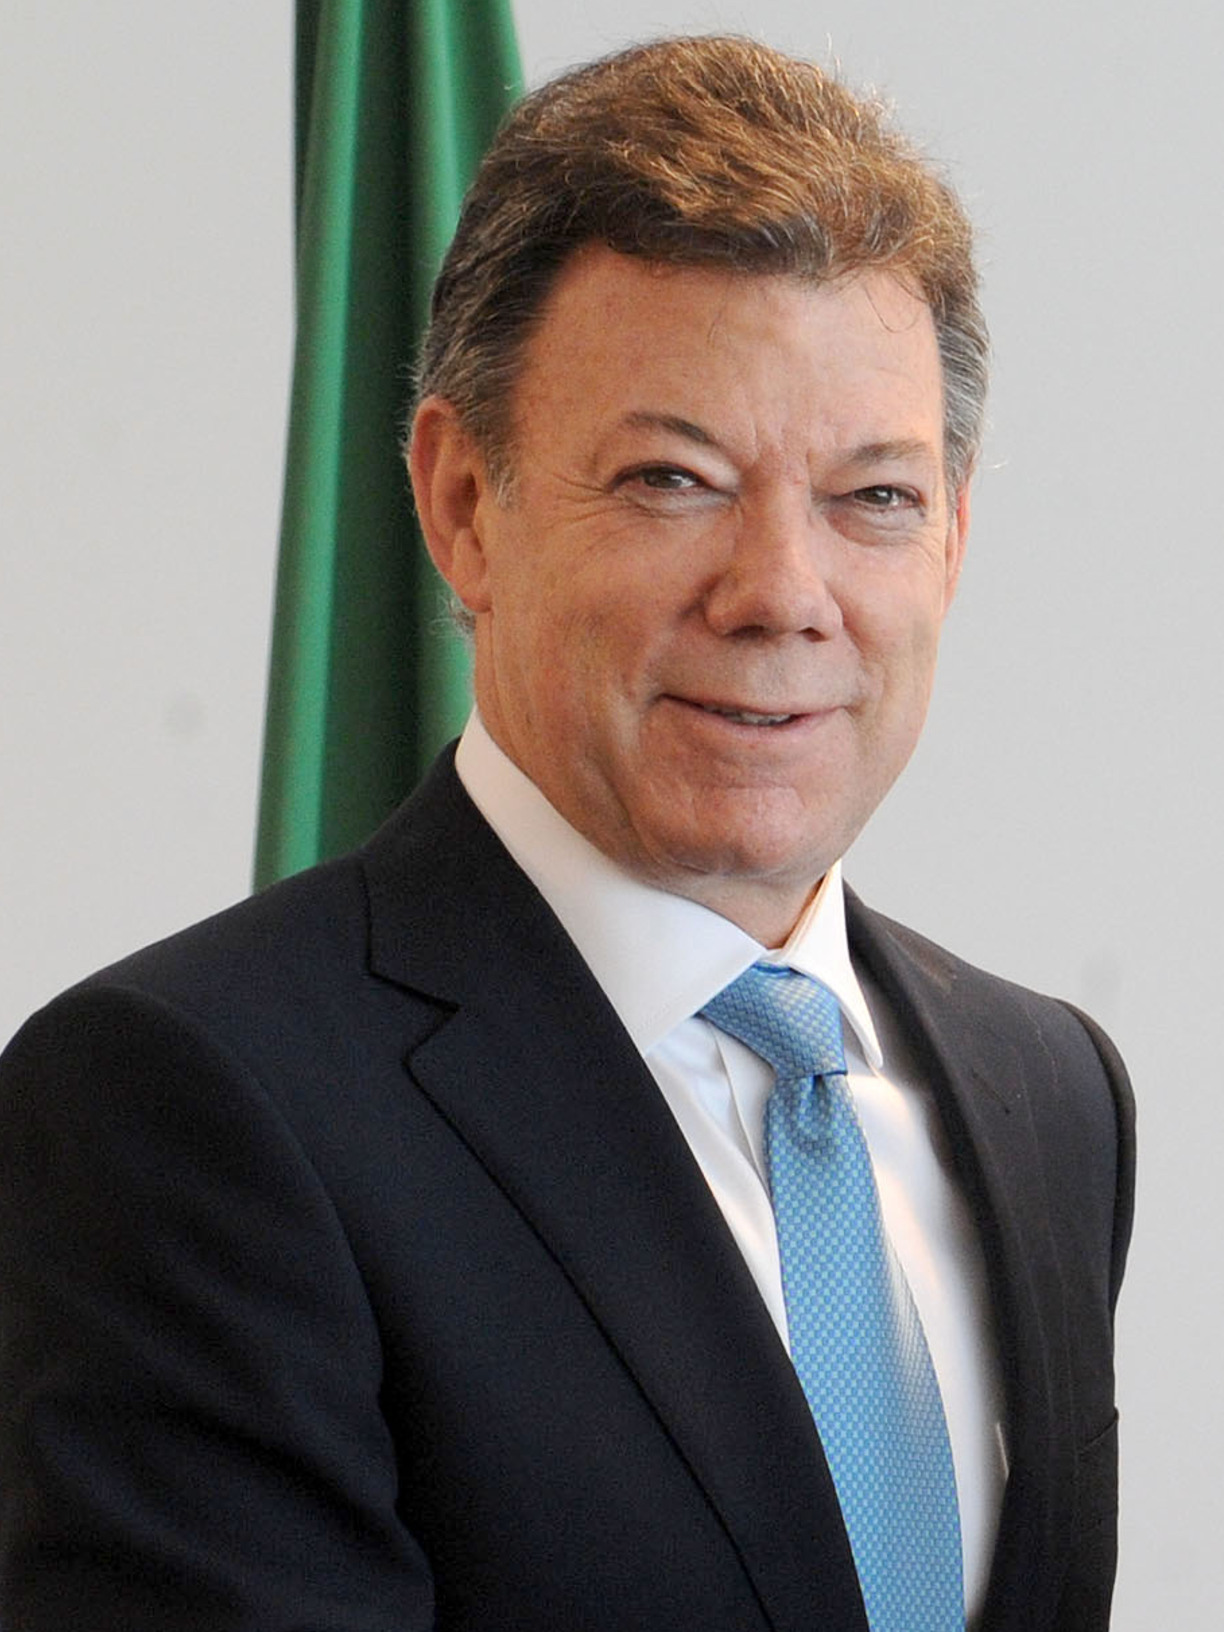 Photo of Juan Manuel Santos, president of Columbia since 2010 and 2016 Nobel Peace Prize winner.